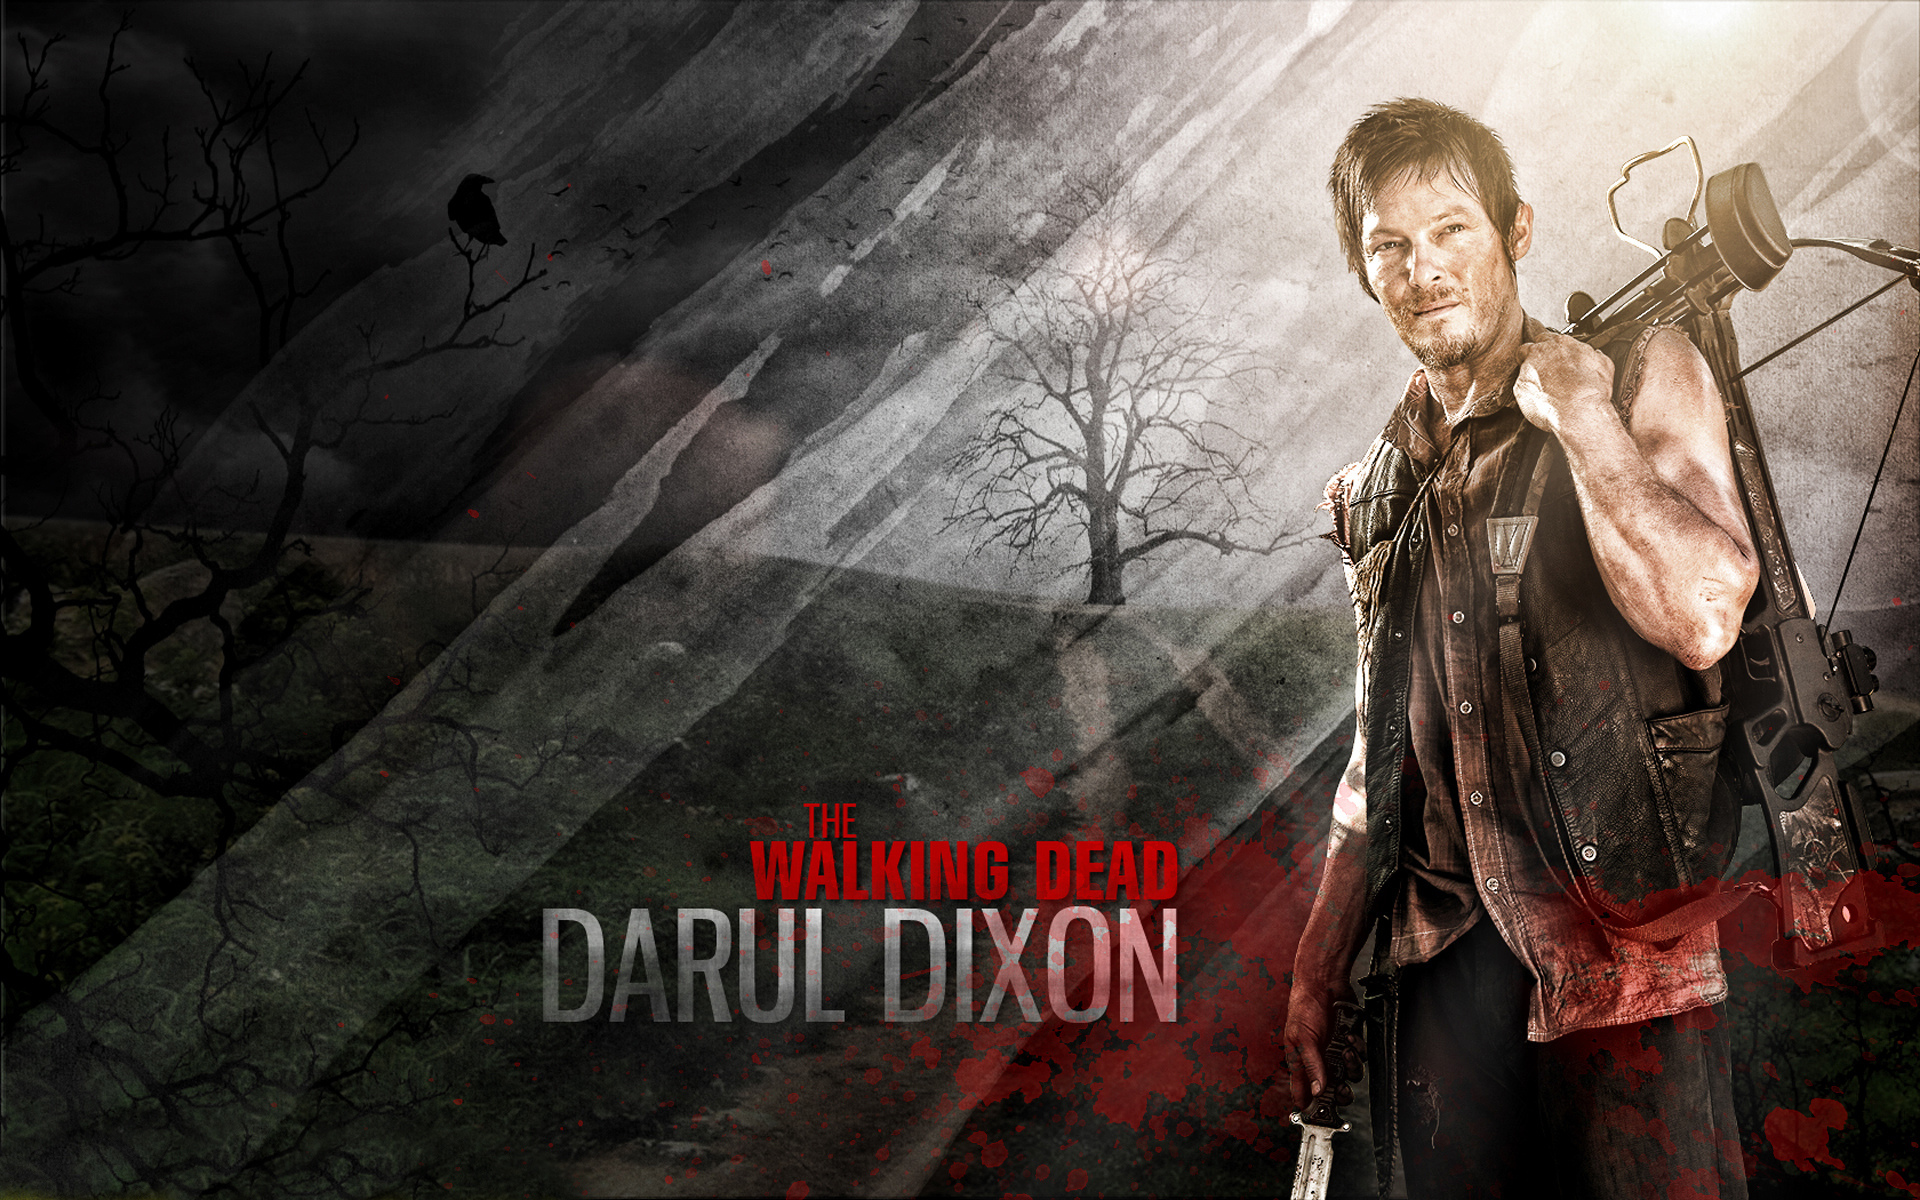 the walking dead darul dixon hd wallpaper | 1920x1200 | gludy